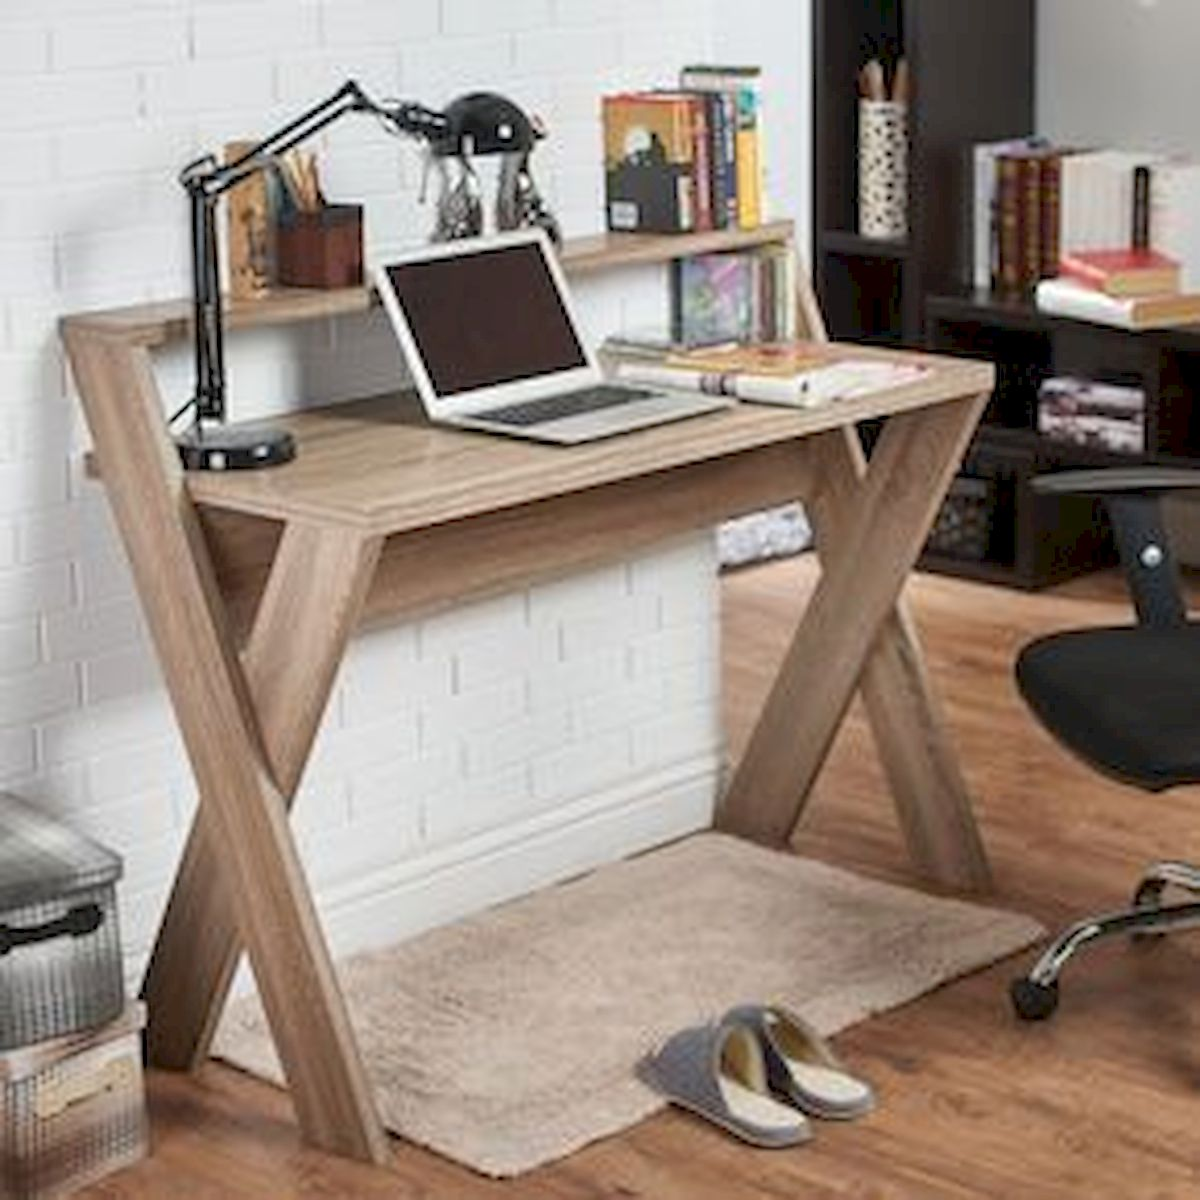 80 Wonderful DIY Art Desk Work Stations Ideas and Decorations (72)